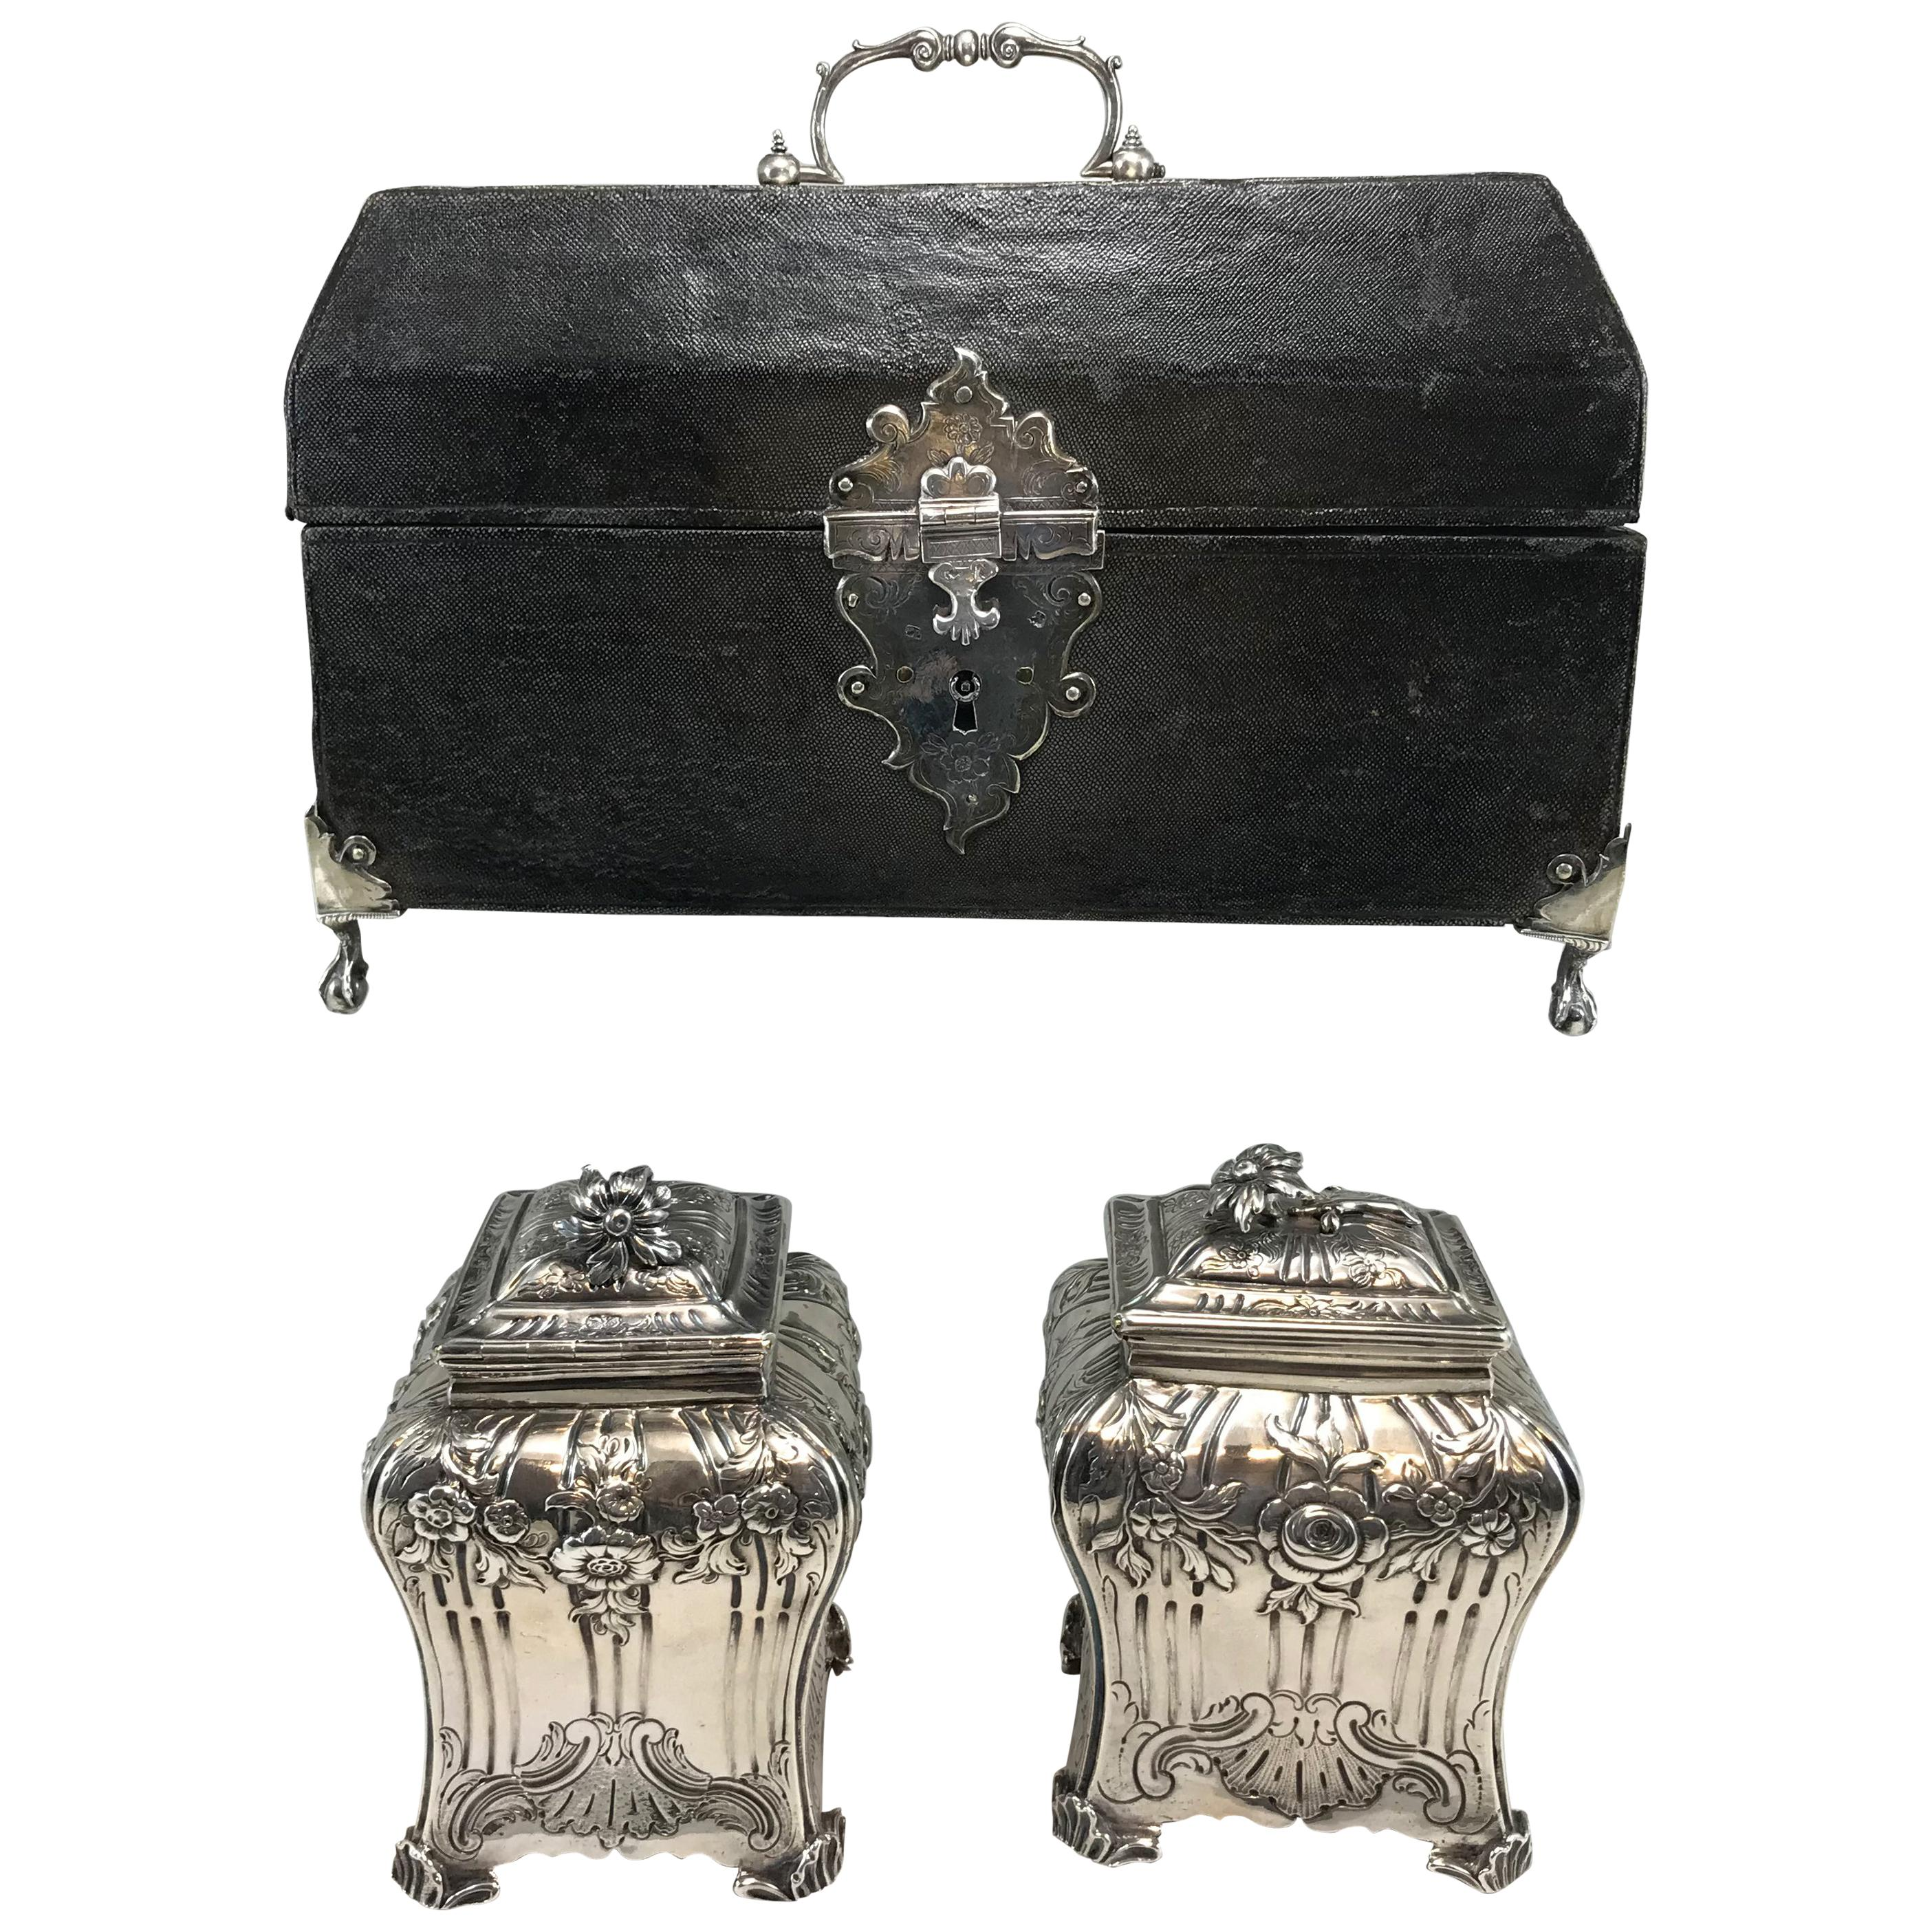 Georgian Shagreen Cased Tea Caddy Box with Pair of Chased Sterling Caddies, 1761